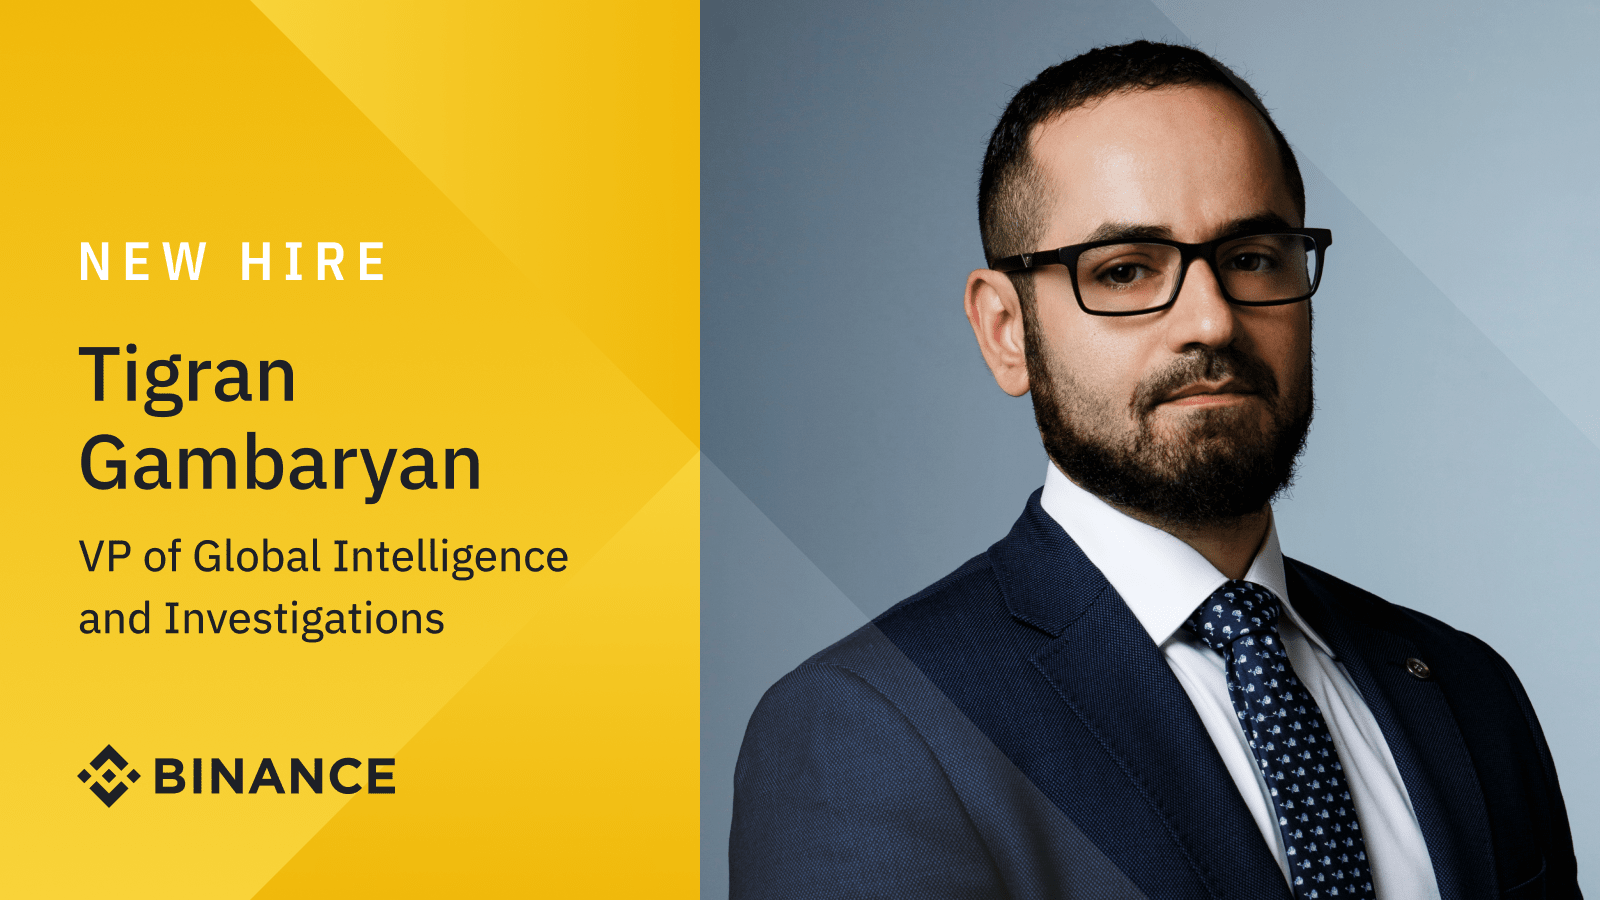 Former IRS-CI Special Agent Tigran Gambaryan joins Binance as VP of Global Intelligence and Investigations   Binance Blogon October 8, 2021 at 6:39 am